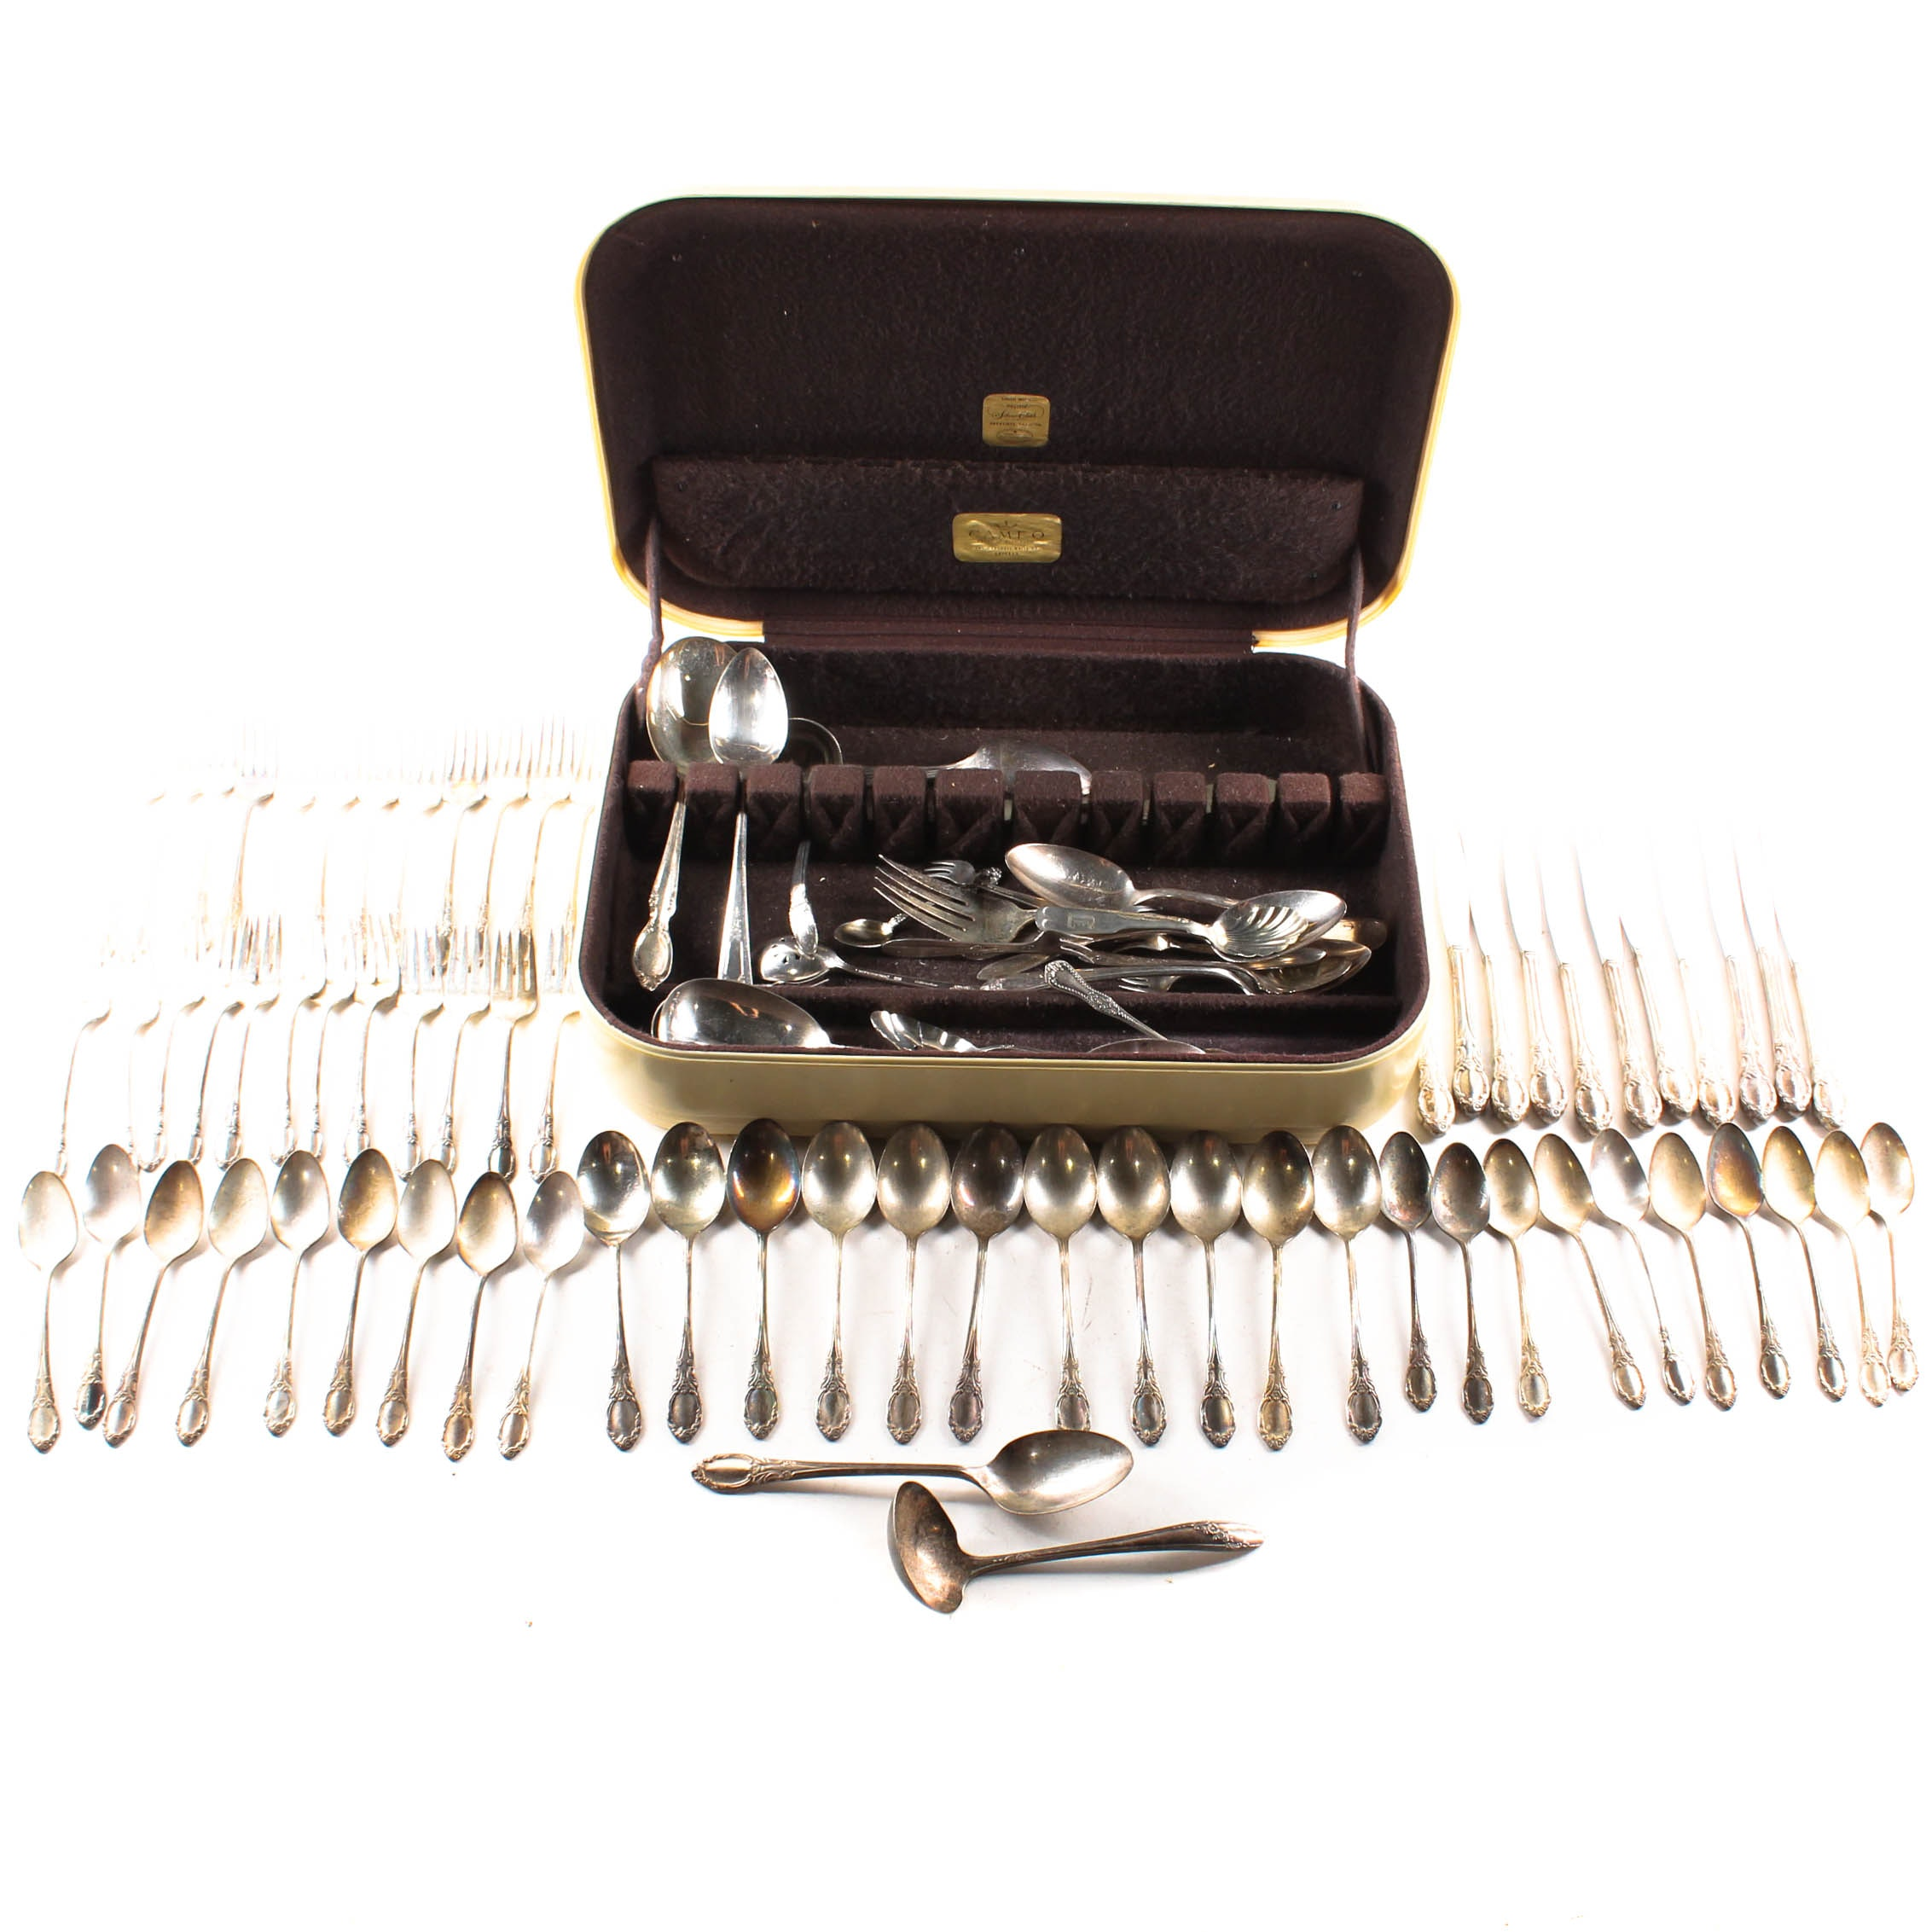 """Wm Rogers """"Park Lane-Chatelaine-Dowry"""" Silver Plate Flatware and Asst. Flatware"""